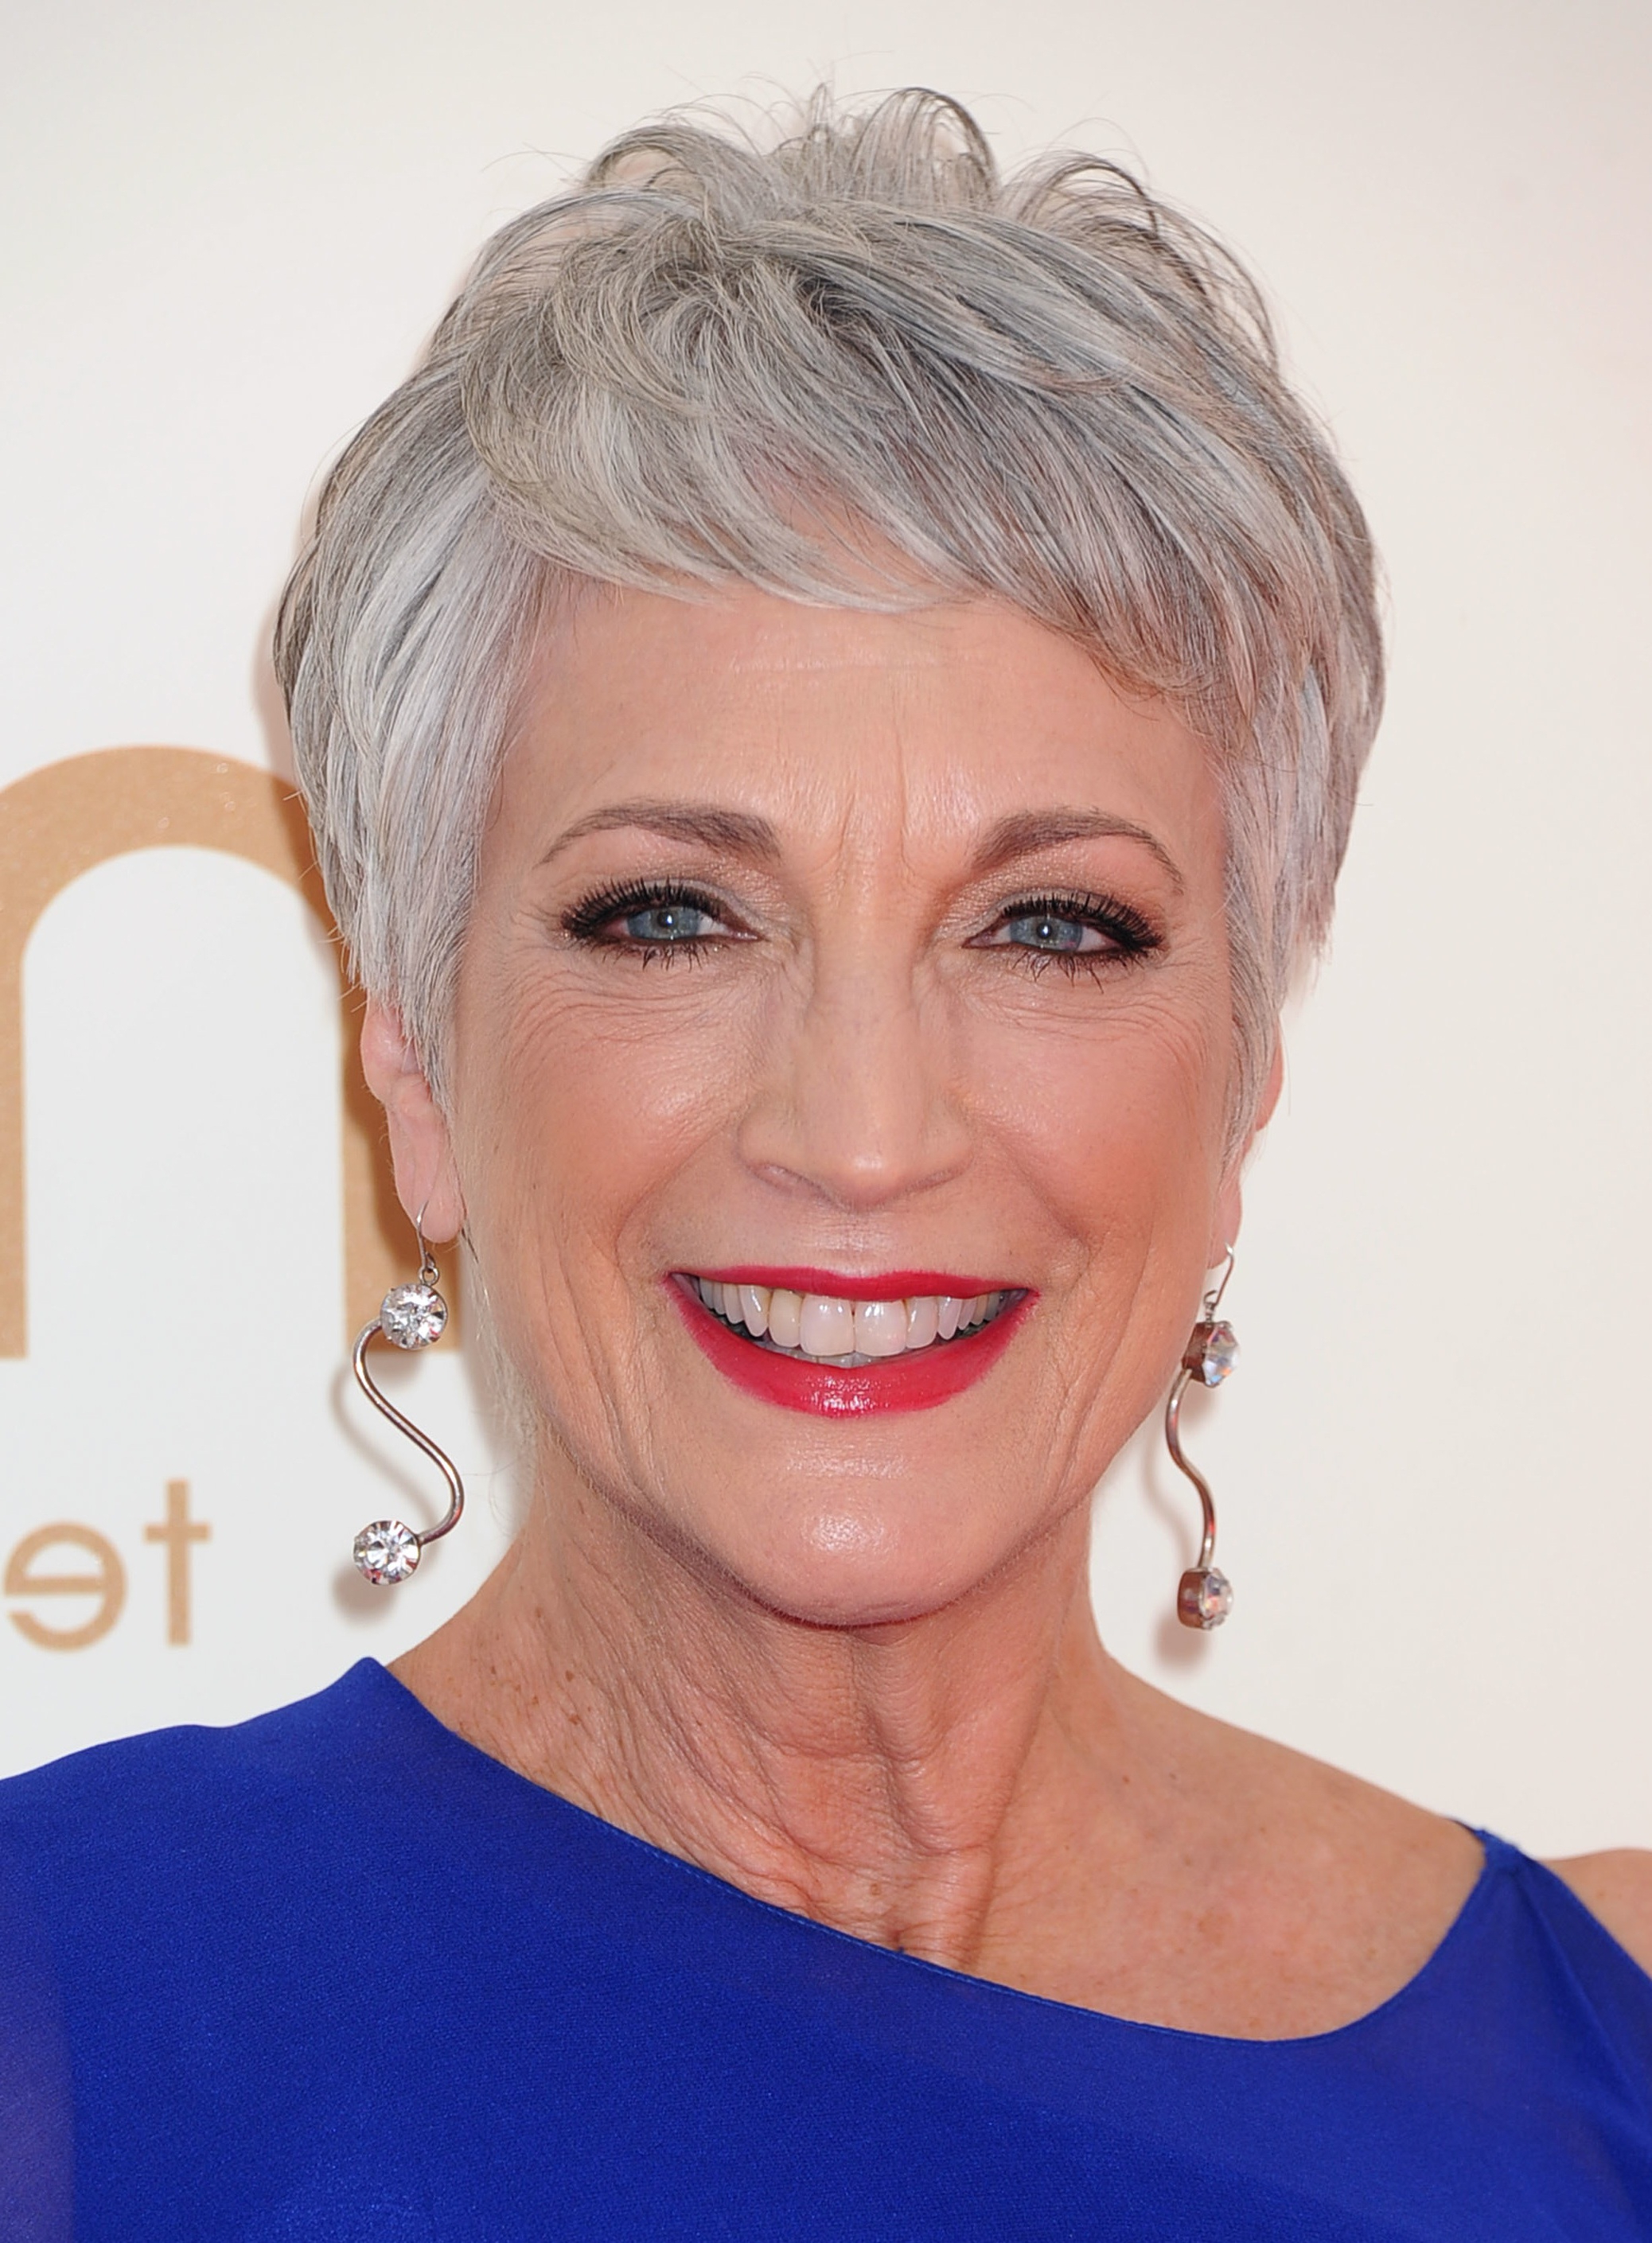 29 Reasons You Should Fall In Love With Hairstyles For 29 Year Old Pertaining To Short Haircuts For 60 Year Olds (View 21 of 25)